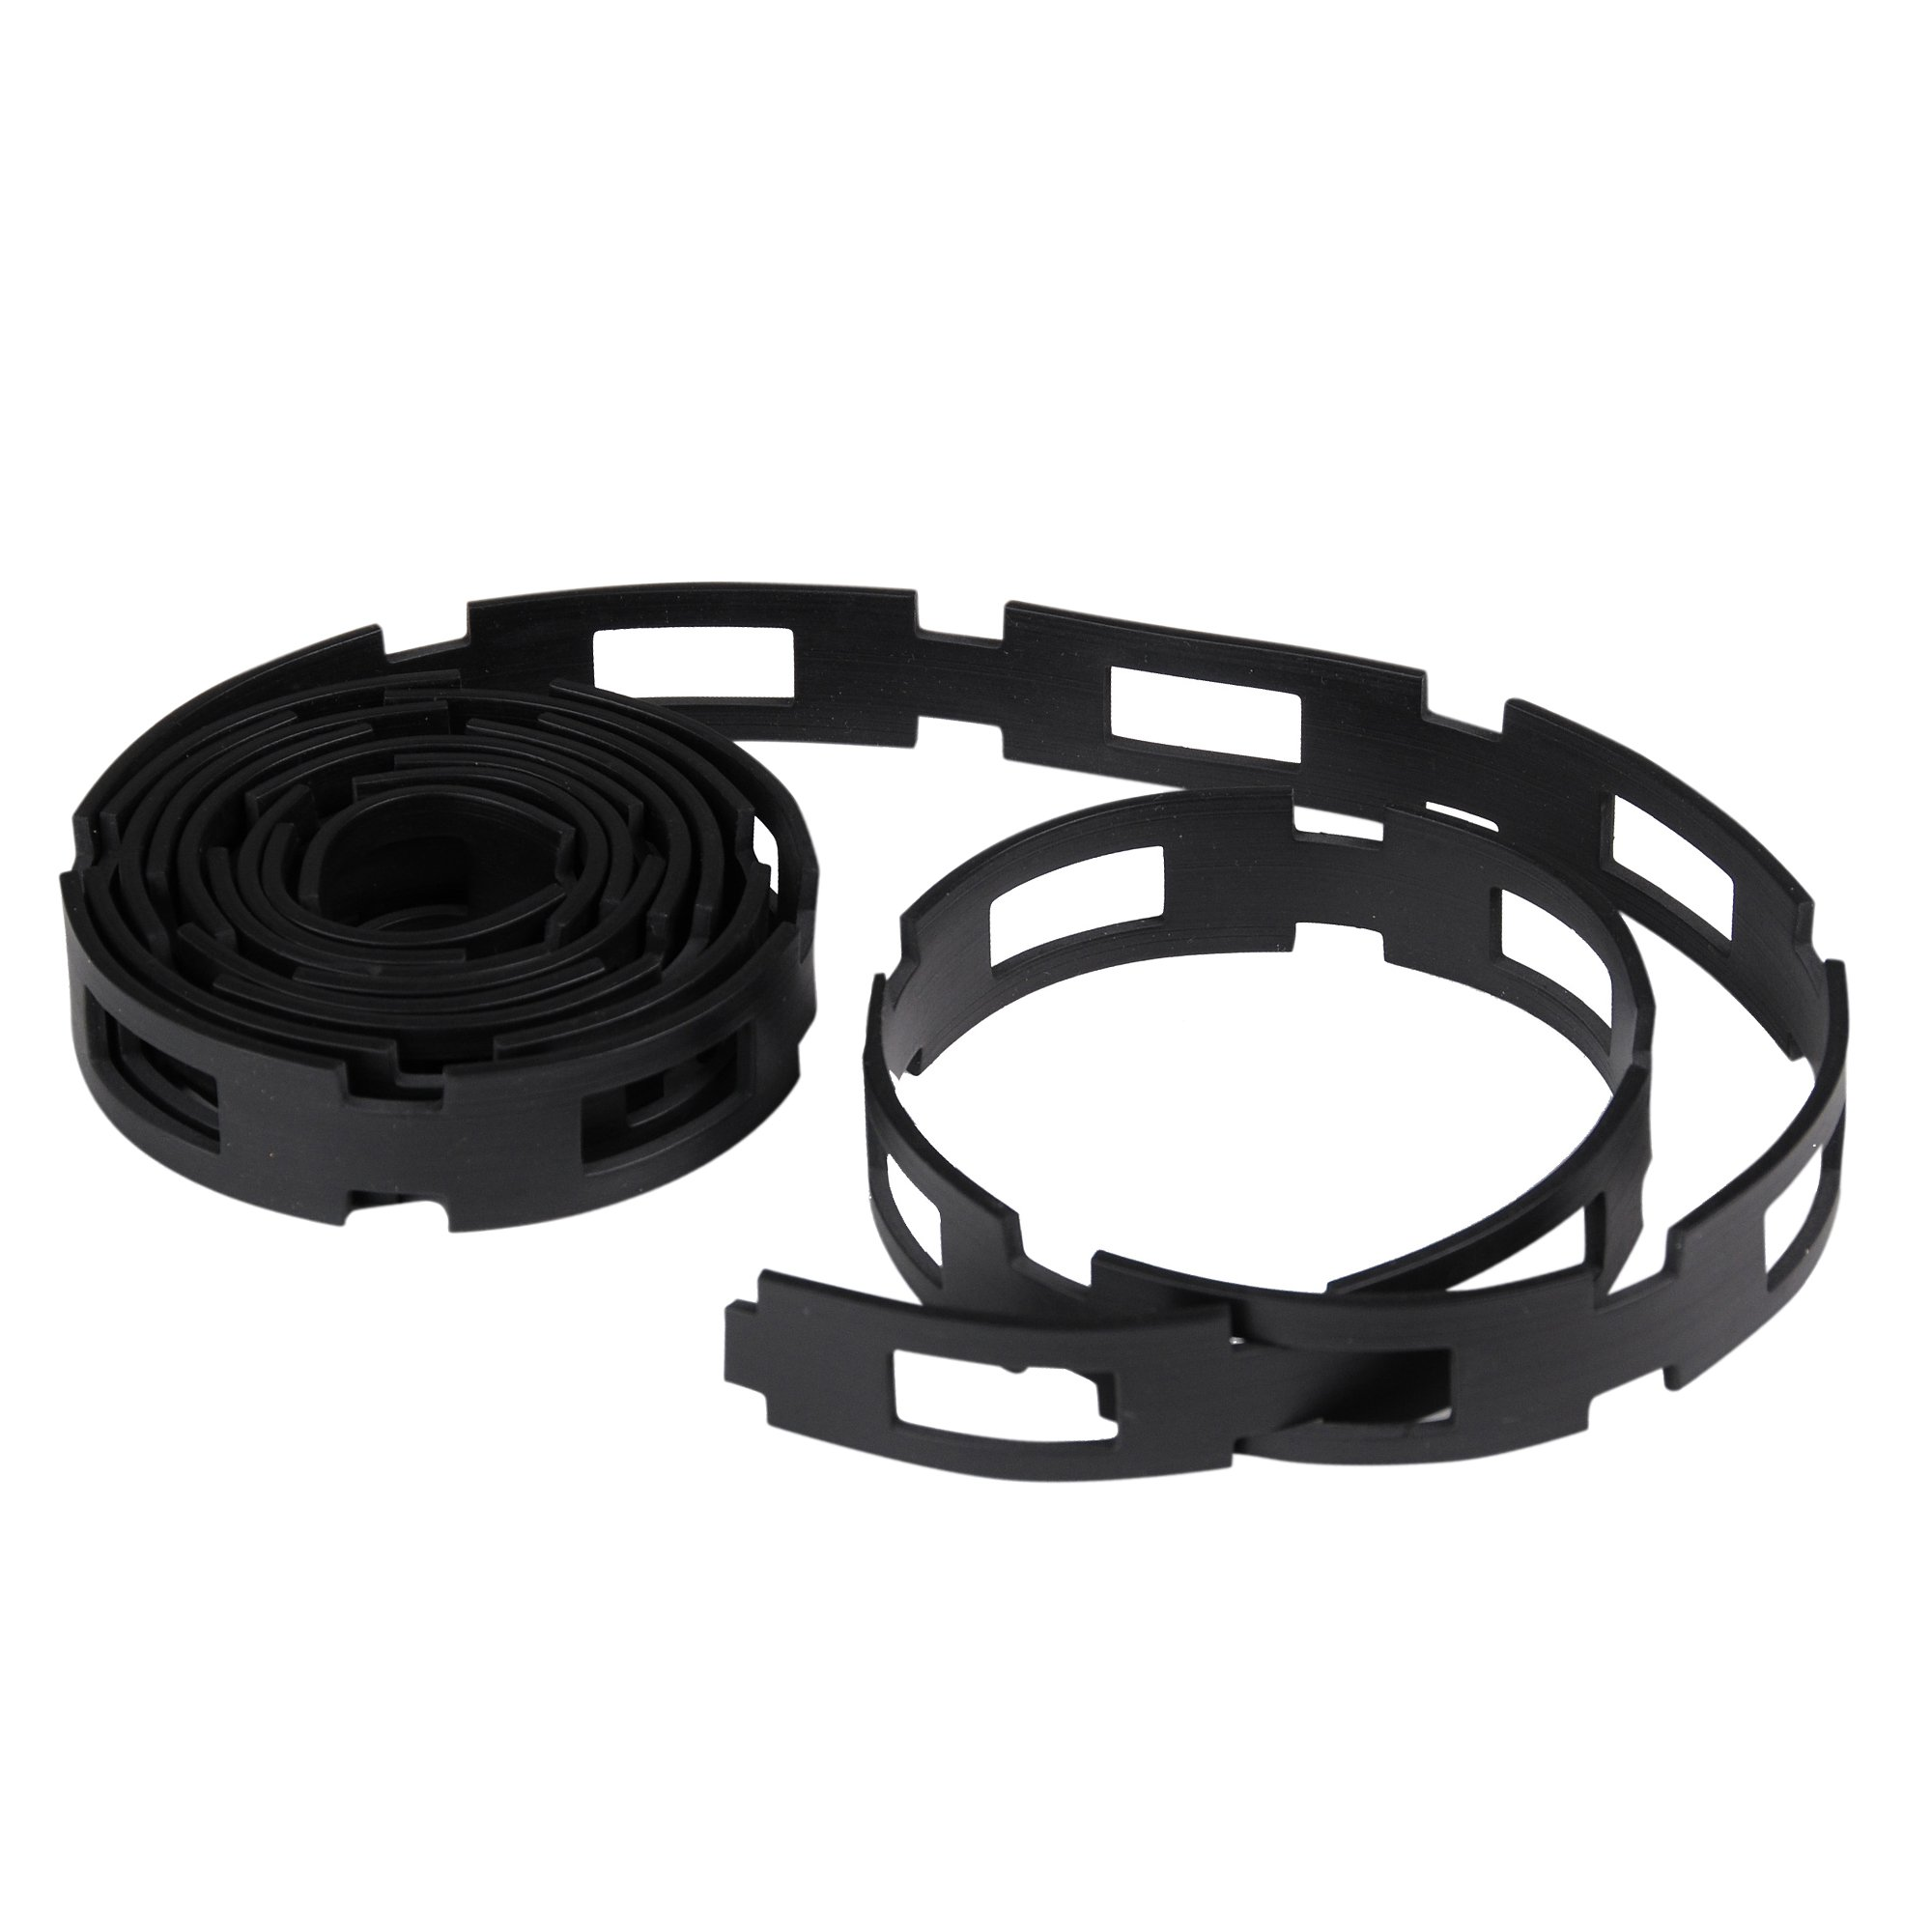 Dimex EasyFlex Plastic Locking Tree, Plant and Cable Ties, 1-Inch by 100-Feet, FirmFlex (1102-2) by Dimex